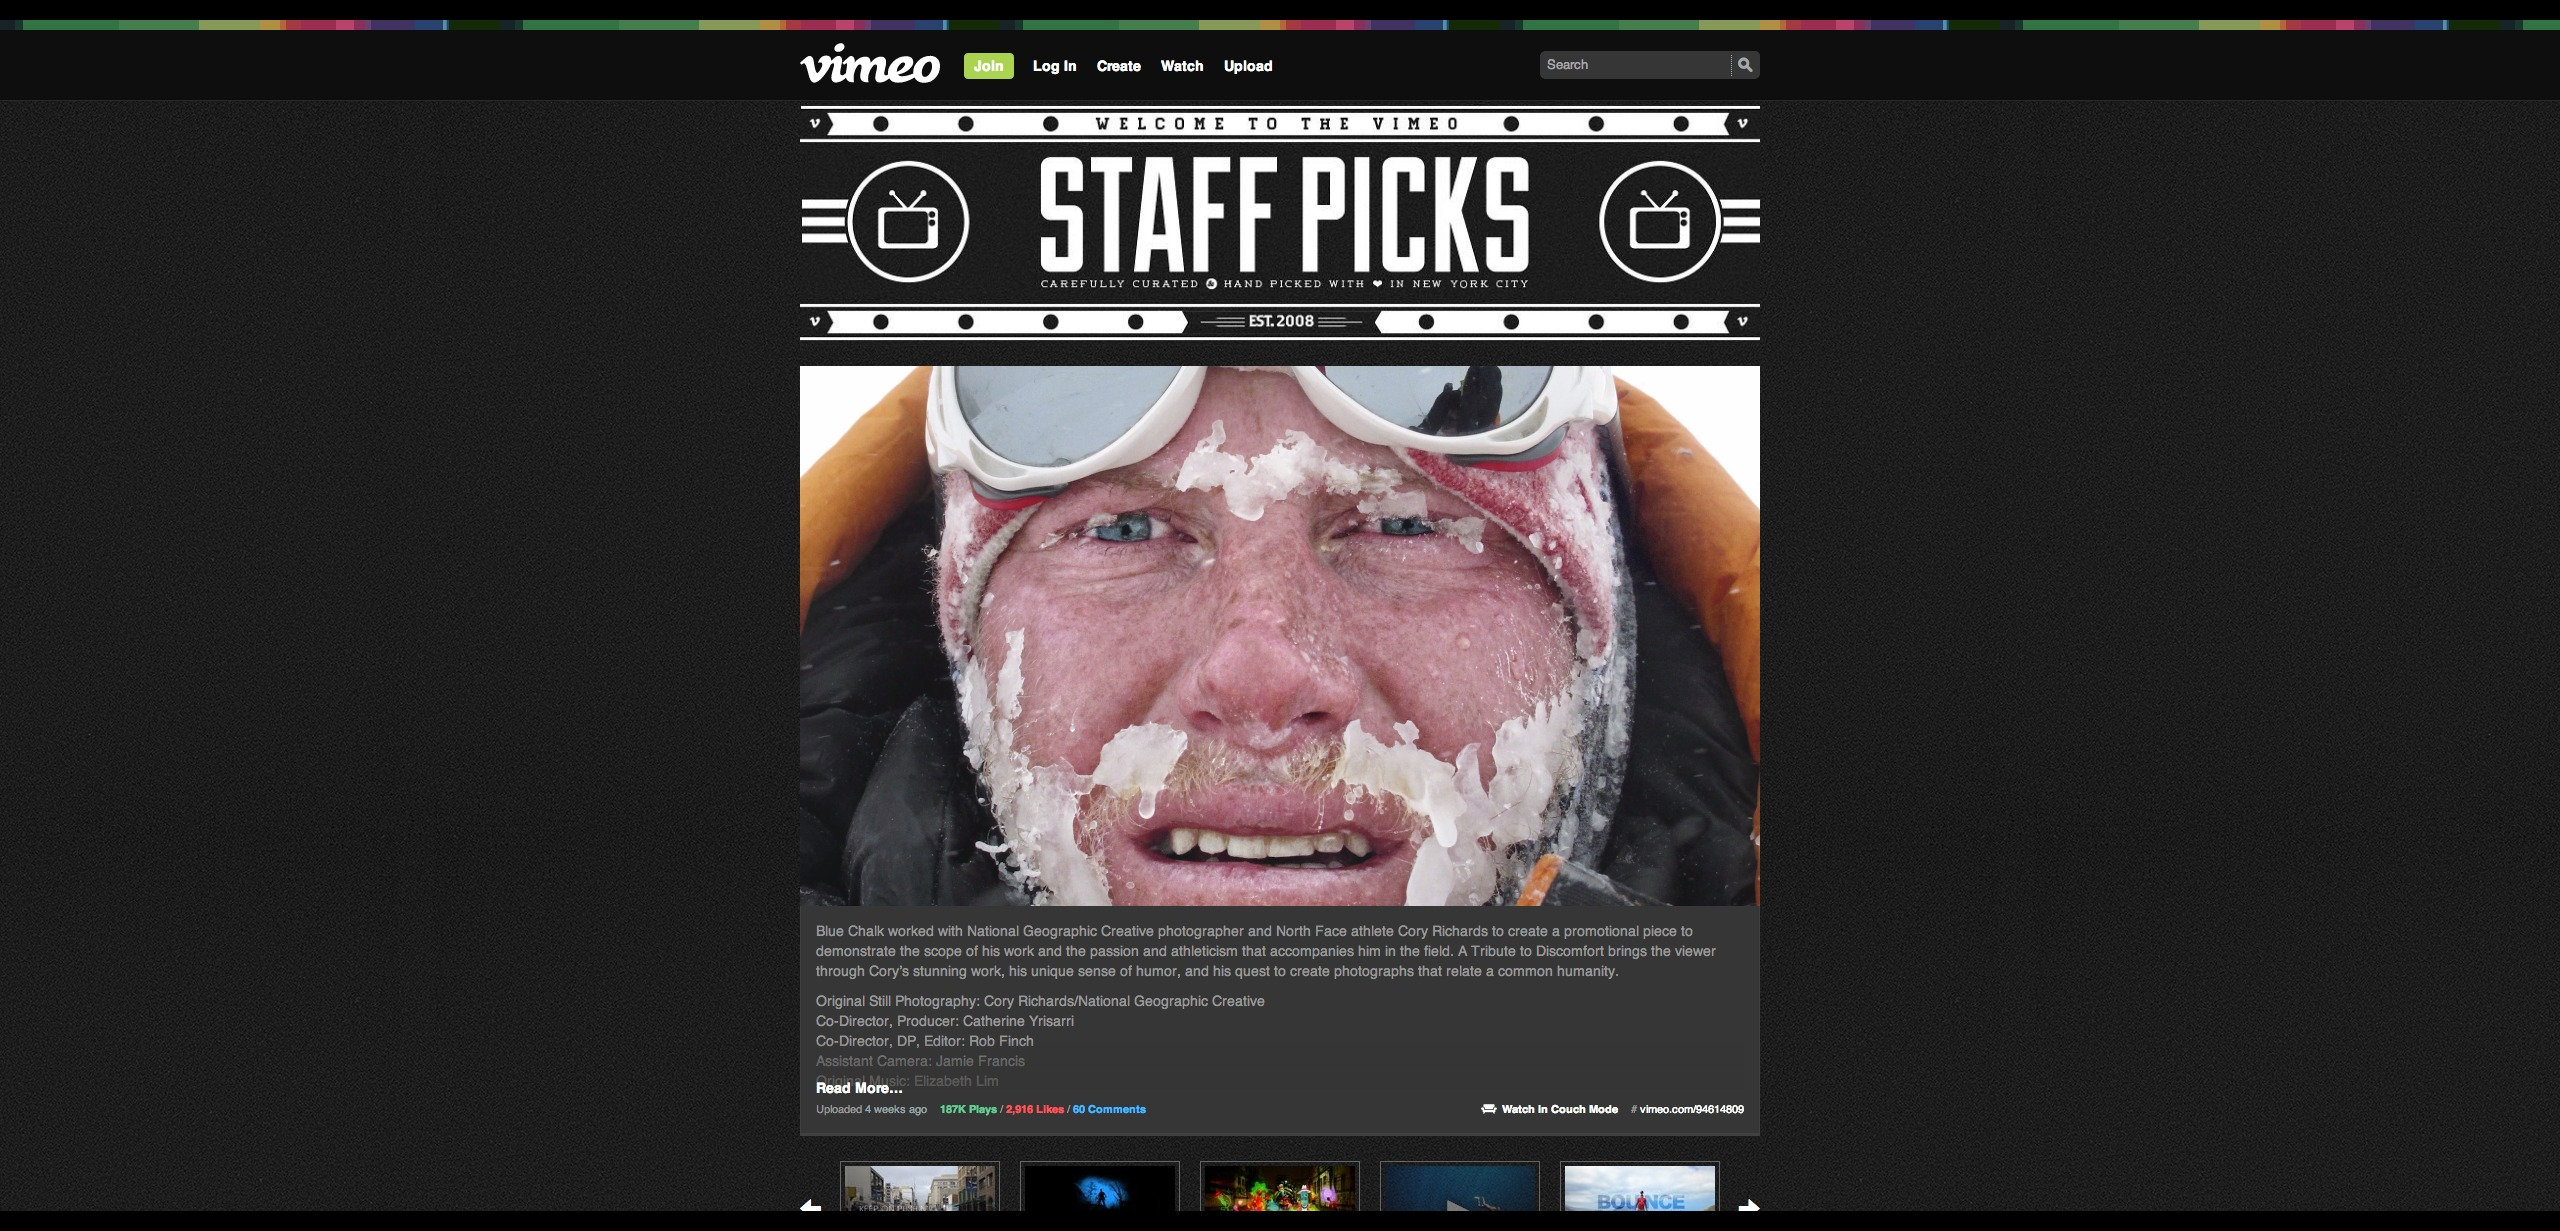 A Tribute to Discomfort  Cory Richards in Vimeo Staff Picks on Vimeo (2)